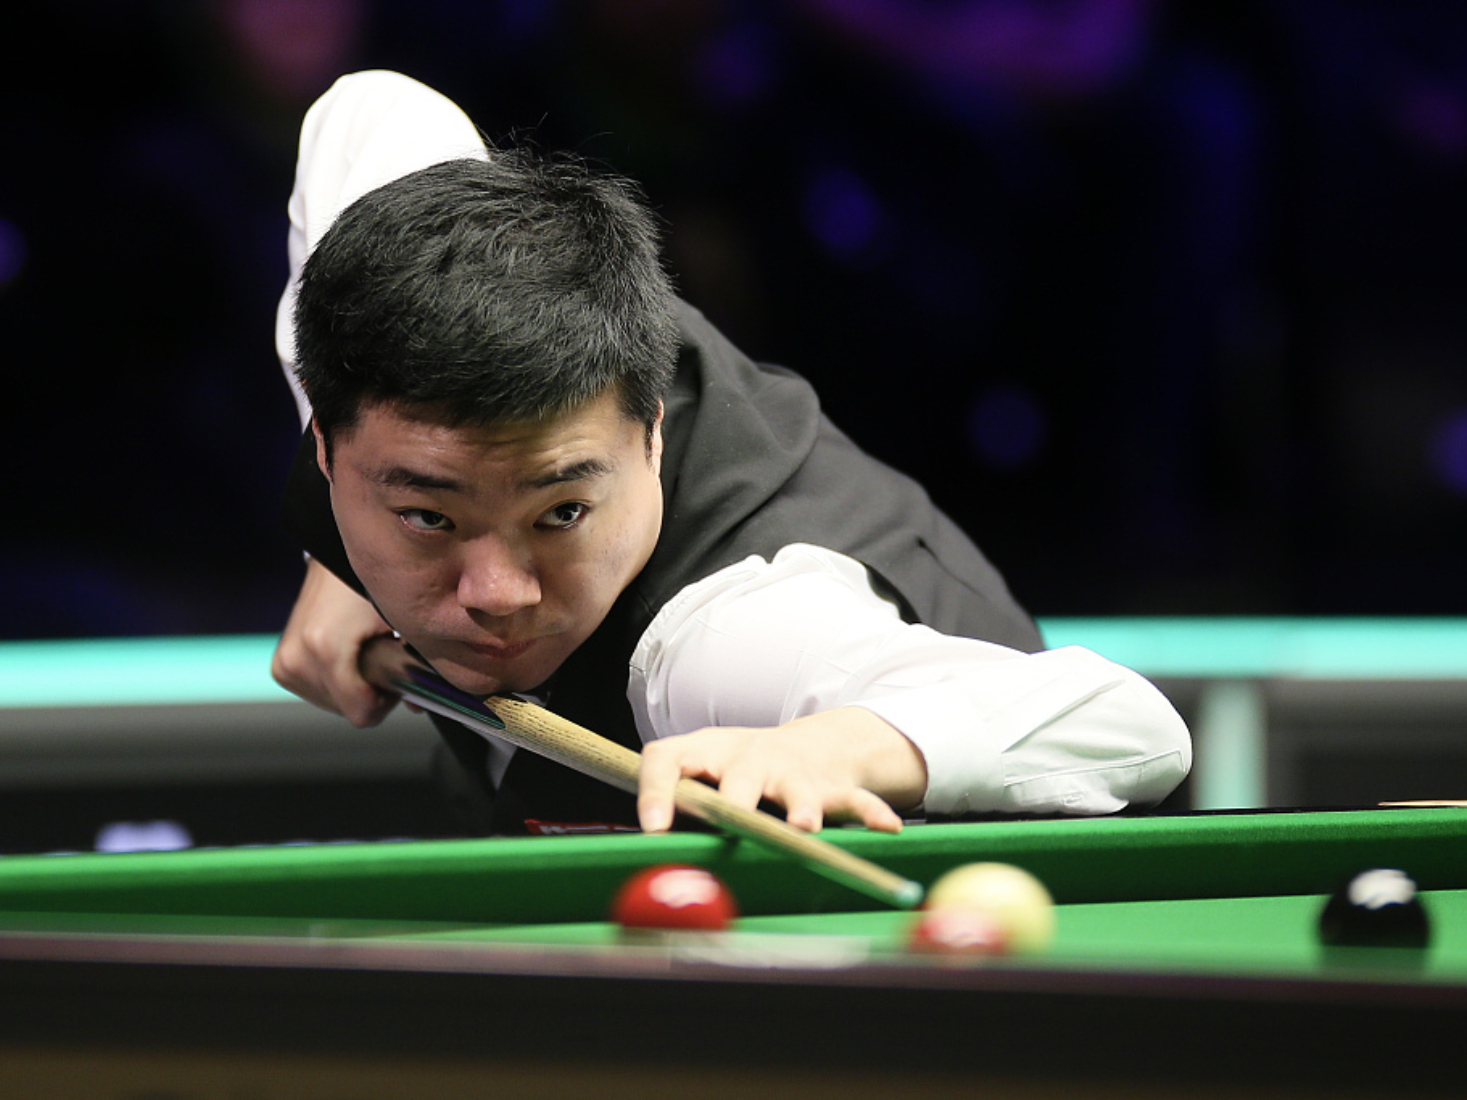 Ding storms to final at snooker UK Championships